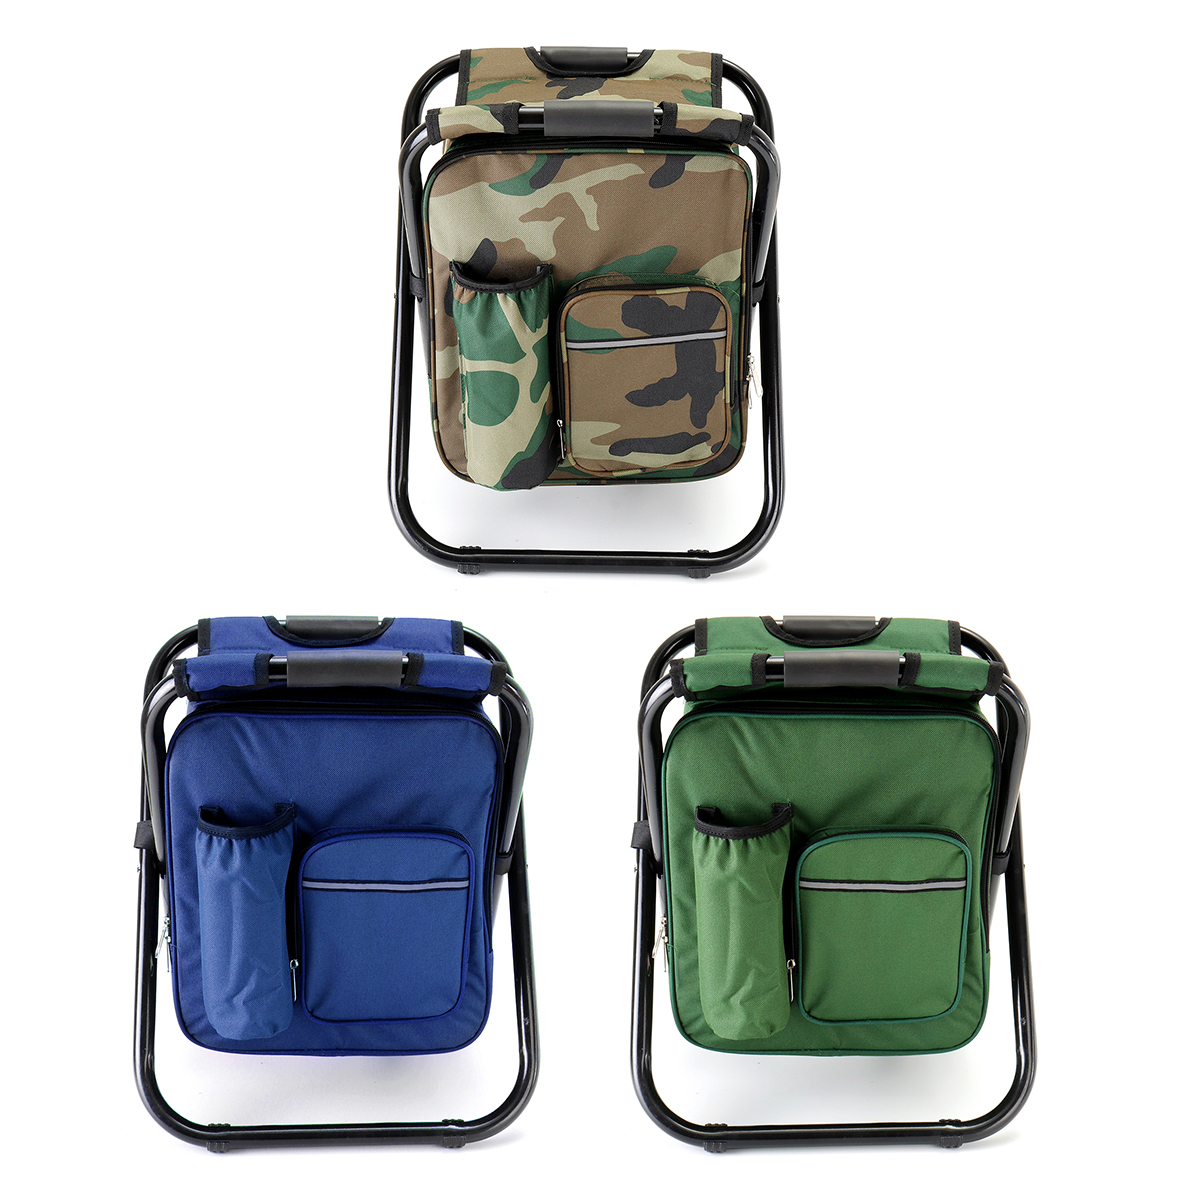 1.8L 3 In 1 Outdoor Fishing Chair Portable Multifunction Foldable Cooler Bag Chair Backpack Fishing Stool Chair Fishing Camping